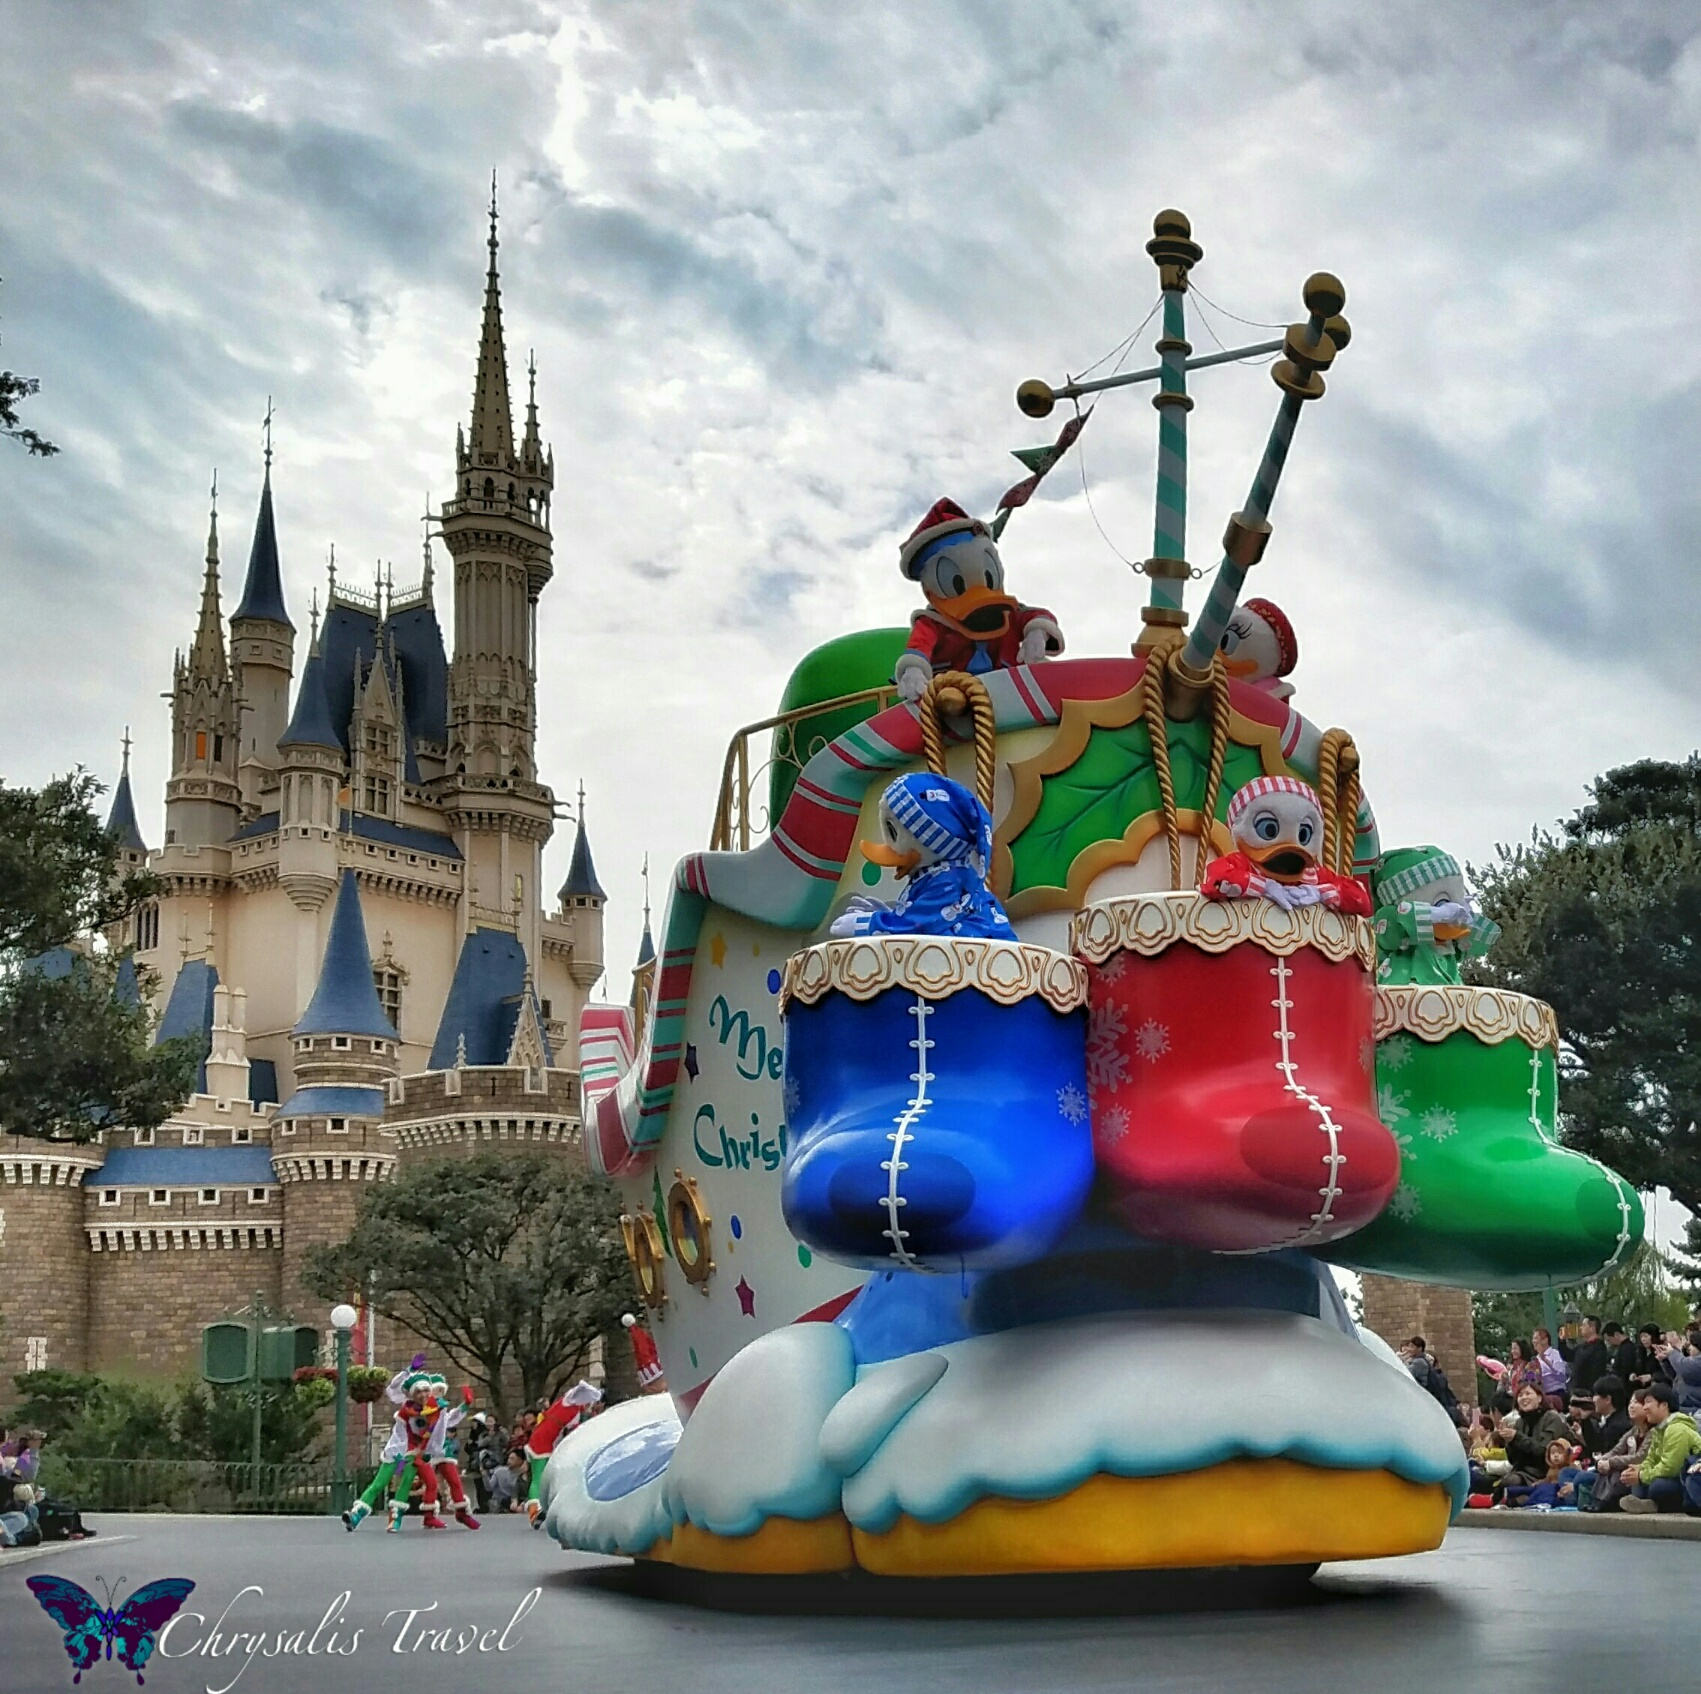 The First Float Features Donald, Daisy, Huey, Dewey, And Louie